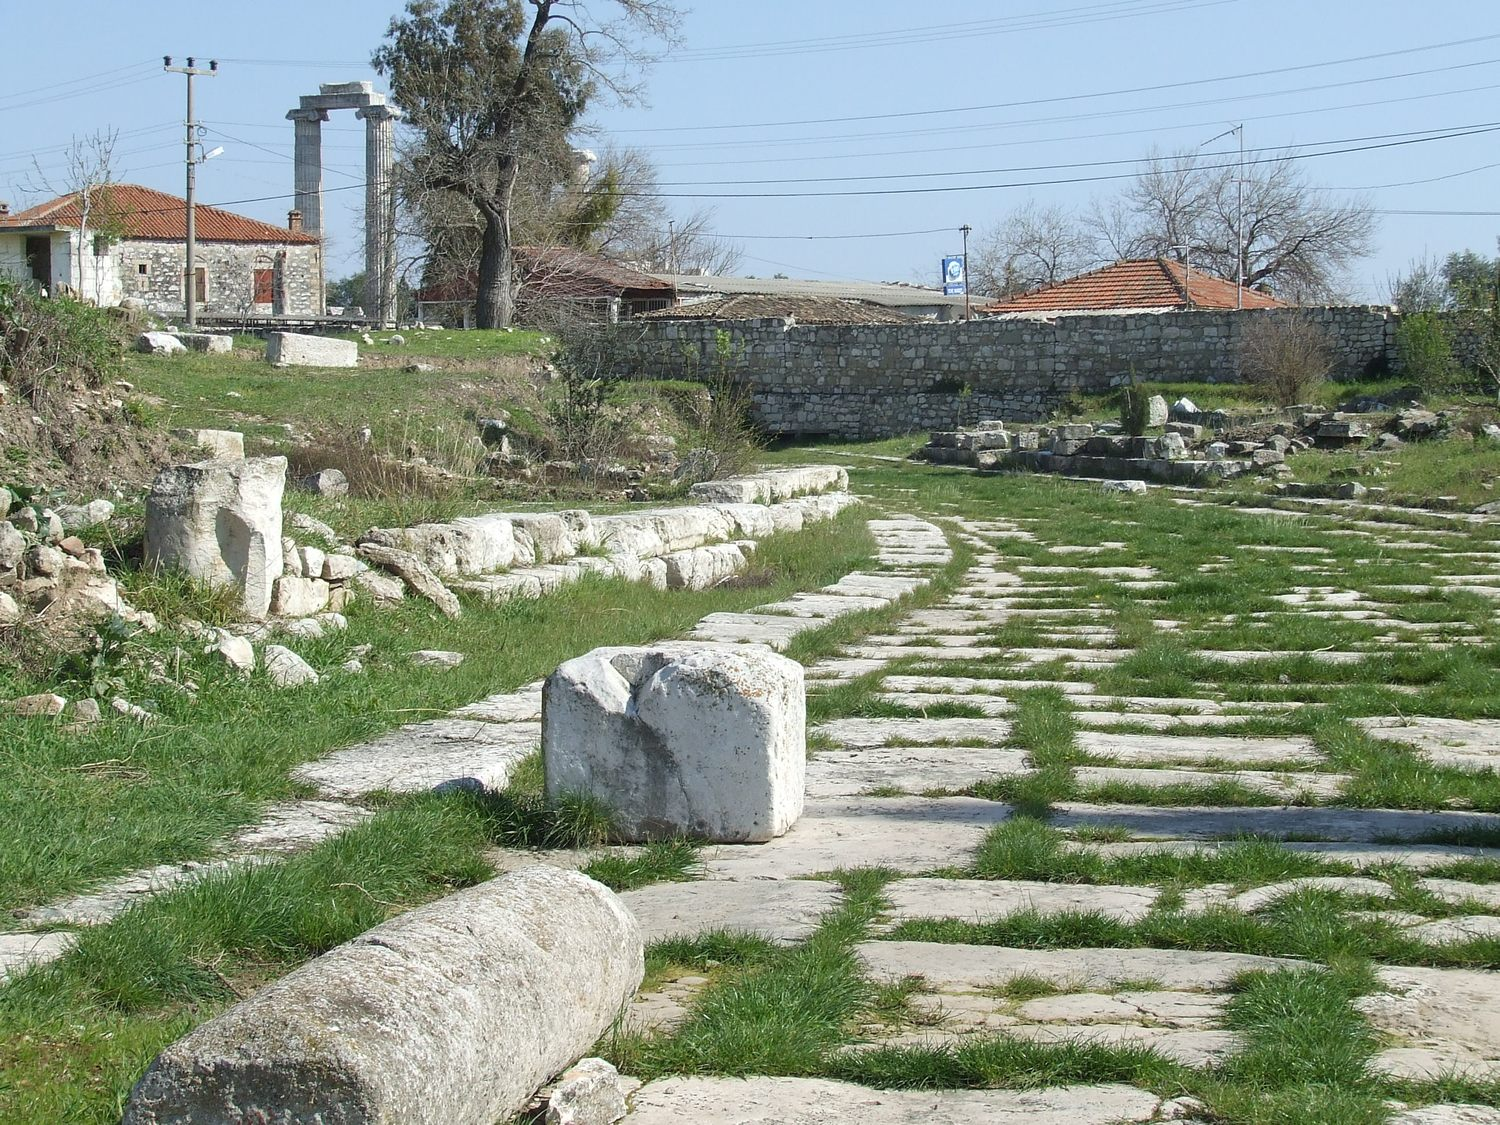 The East turn of the road leading to the Temple of Apollo